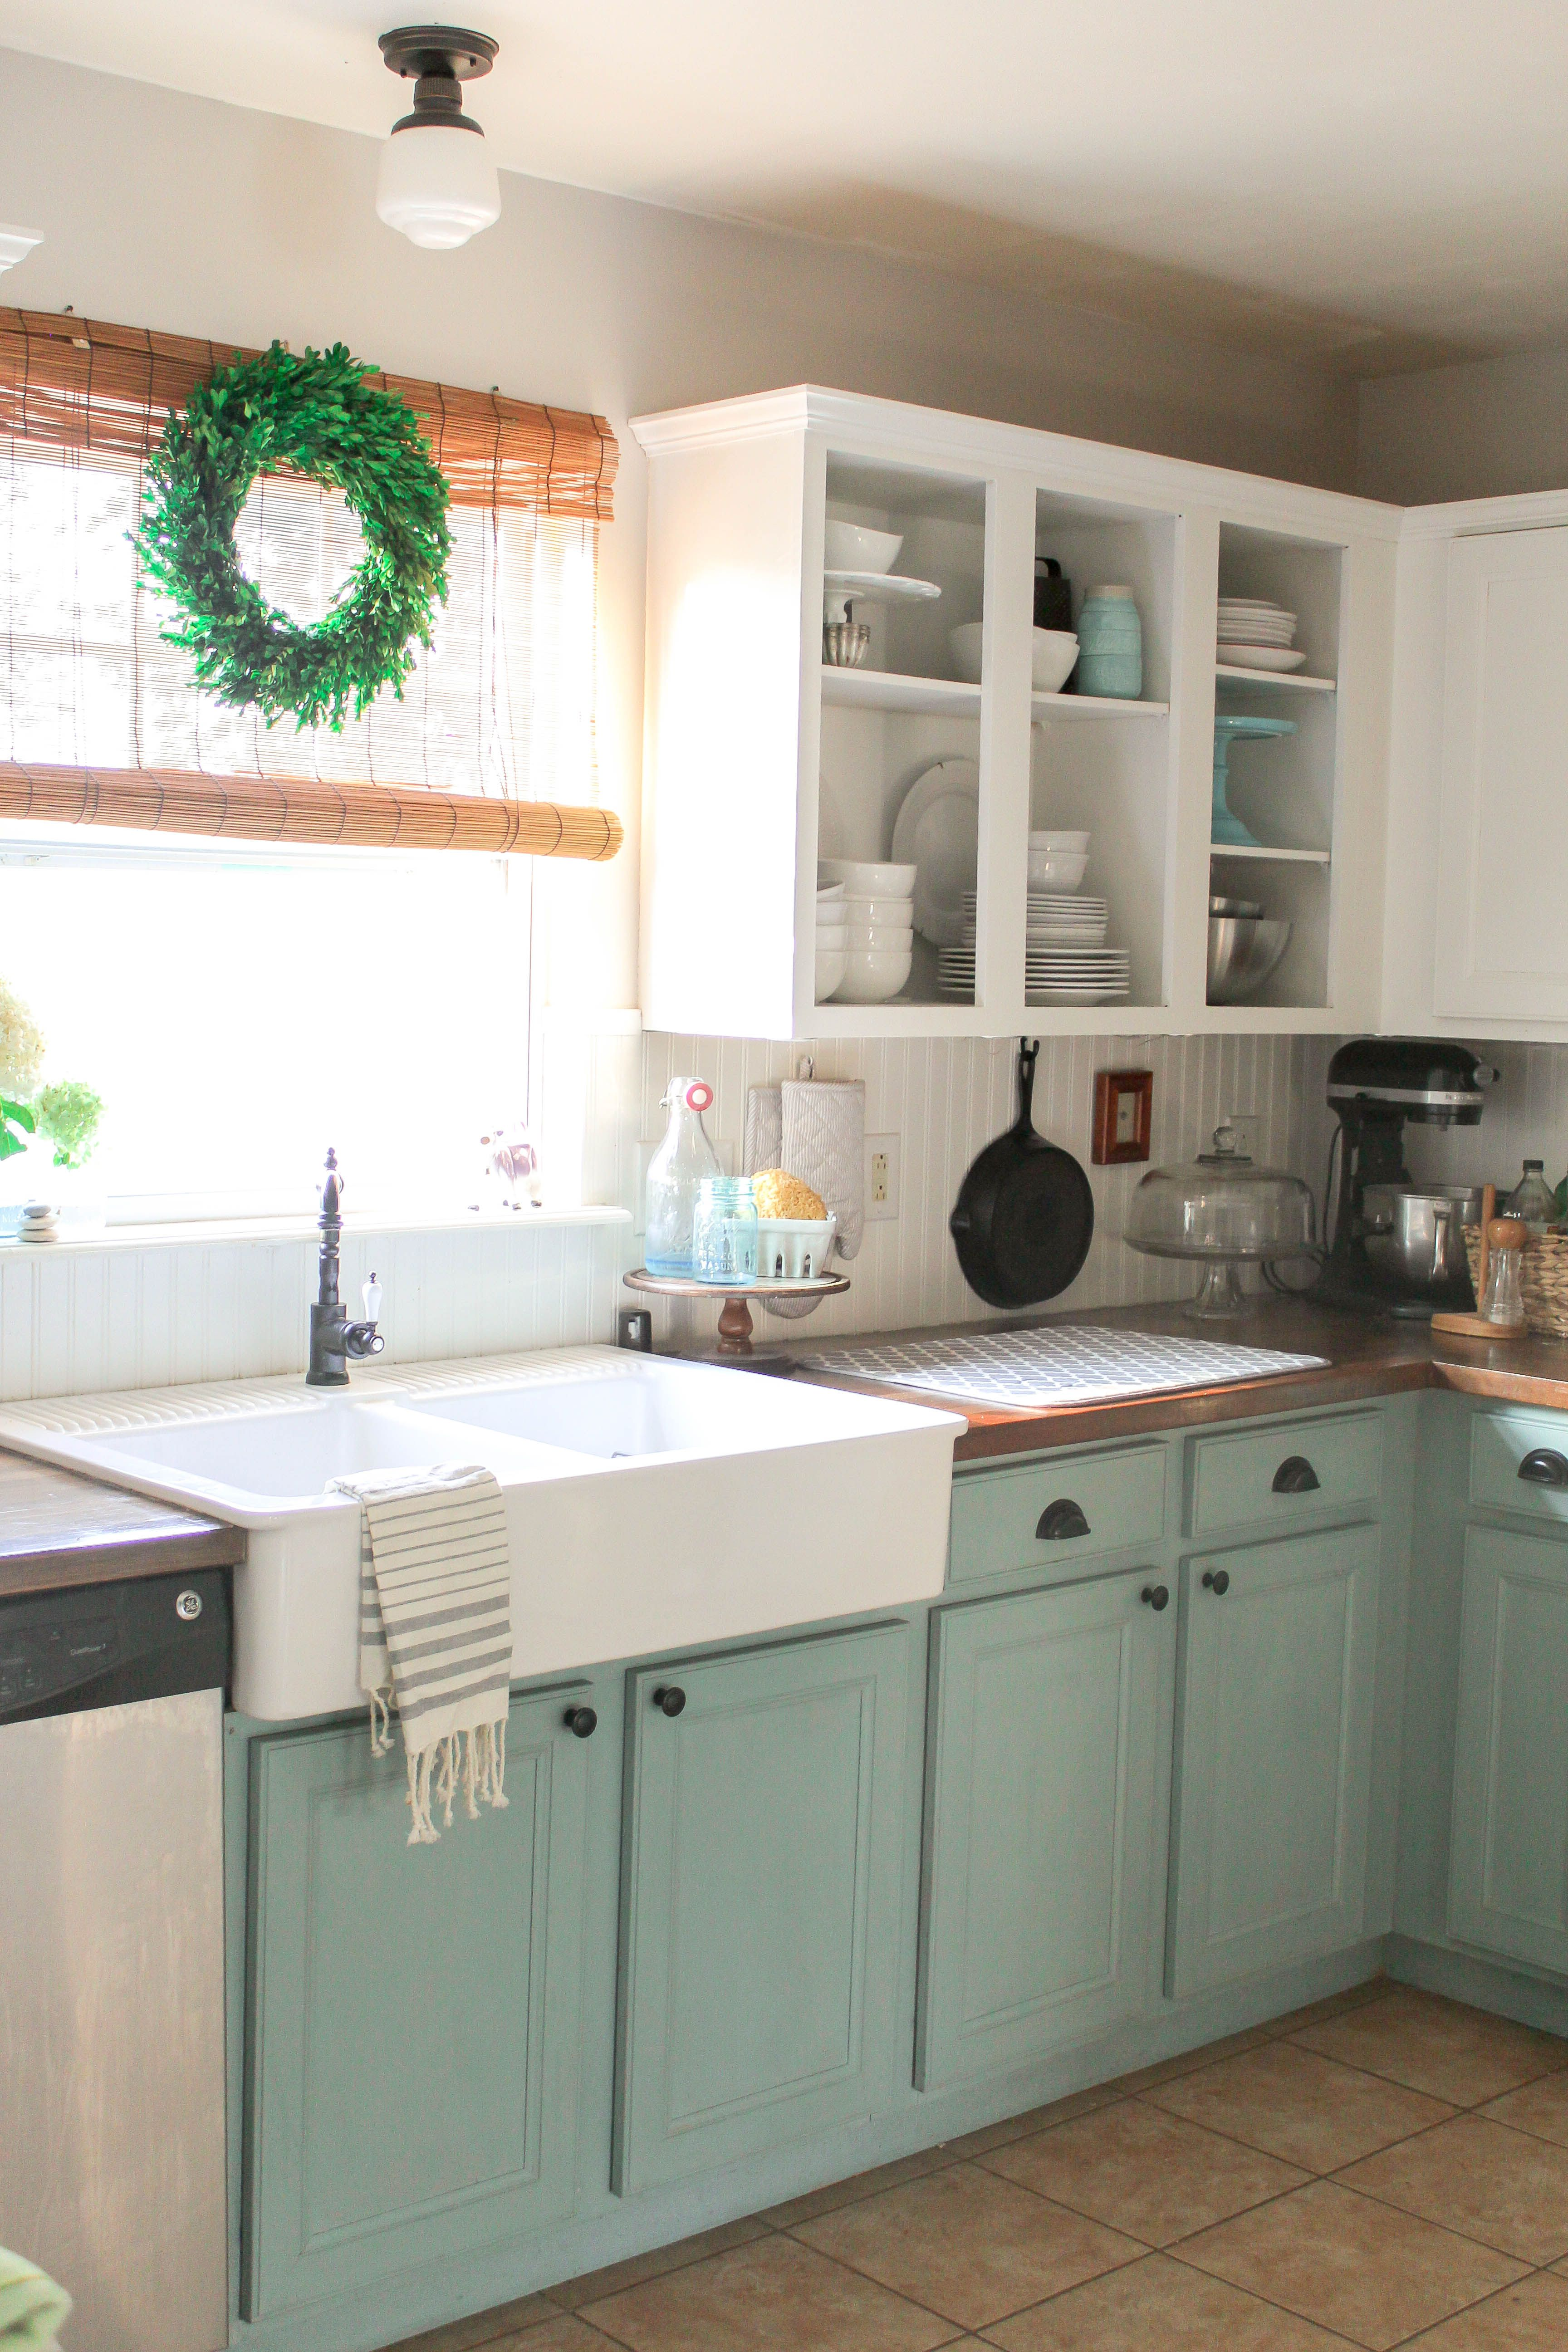 Repainting Kitchen Cabinets Tile Home Depot Chalk Painted 2 Years Later Sara Pinterest Good